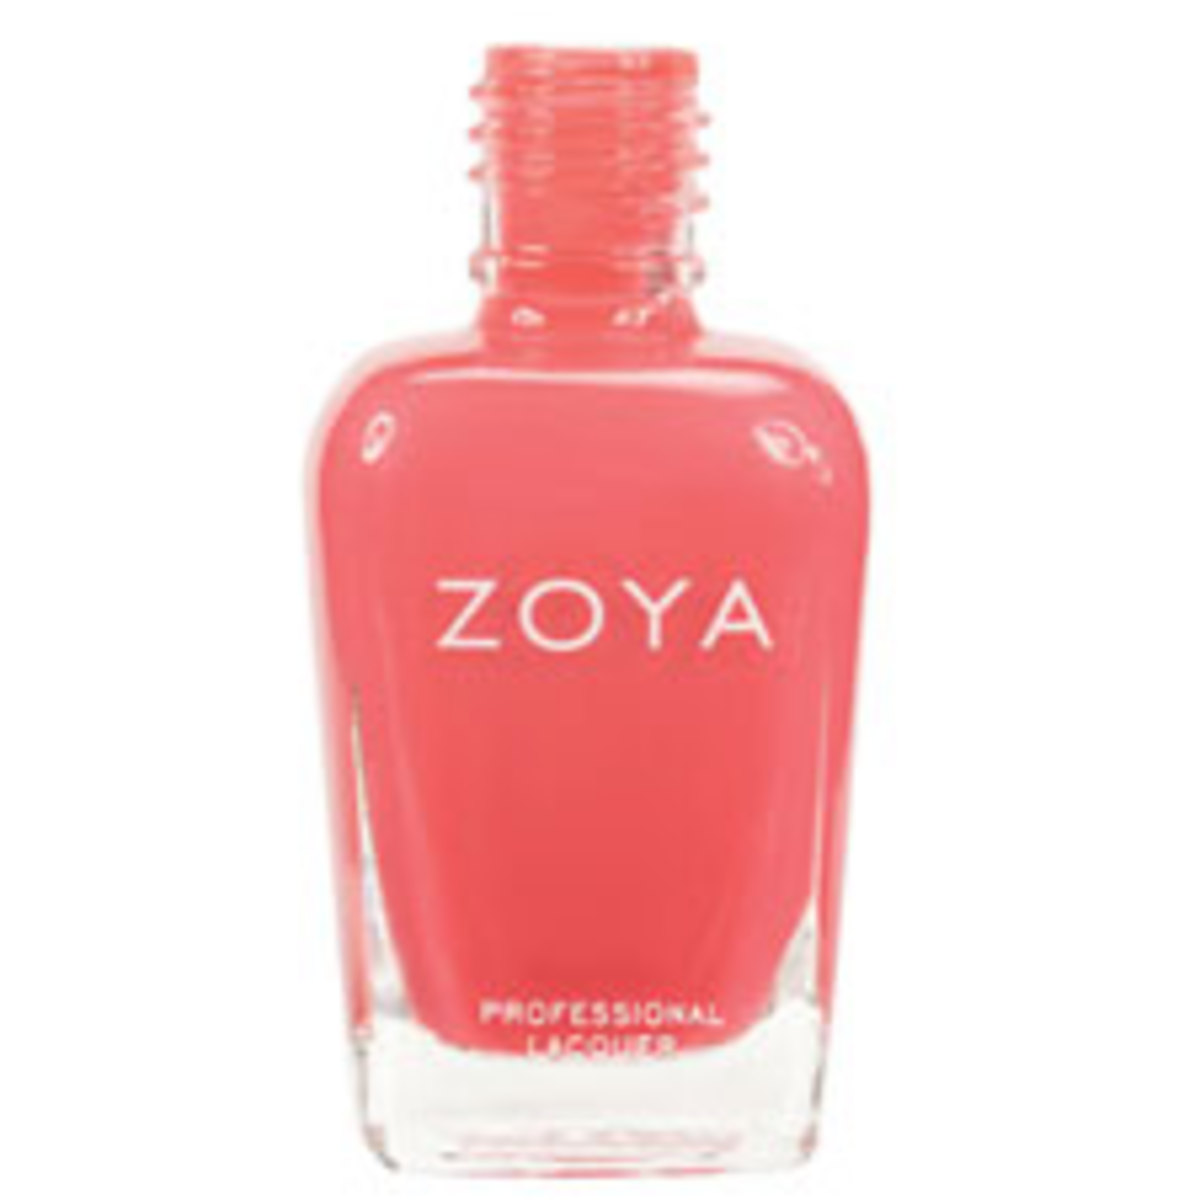 Zoya Nail Polish in Elodie